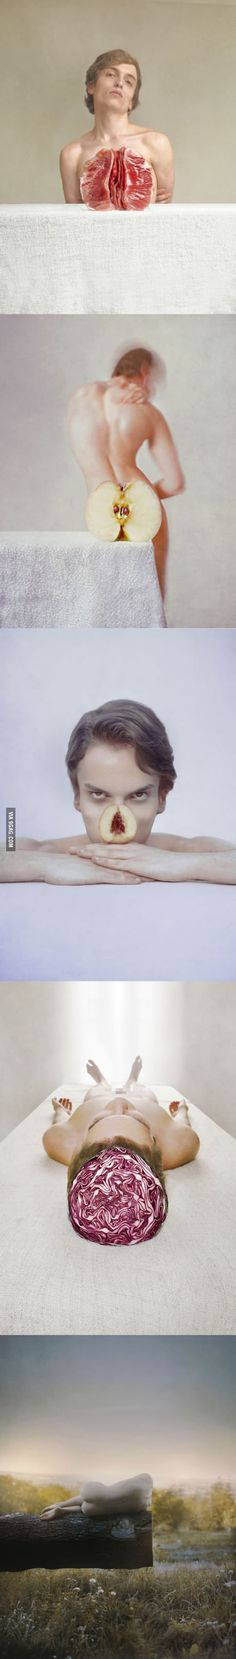 """""""Métaphores"""", series of photos using forced perspective & fruits to create optical illusions"""